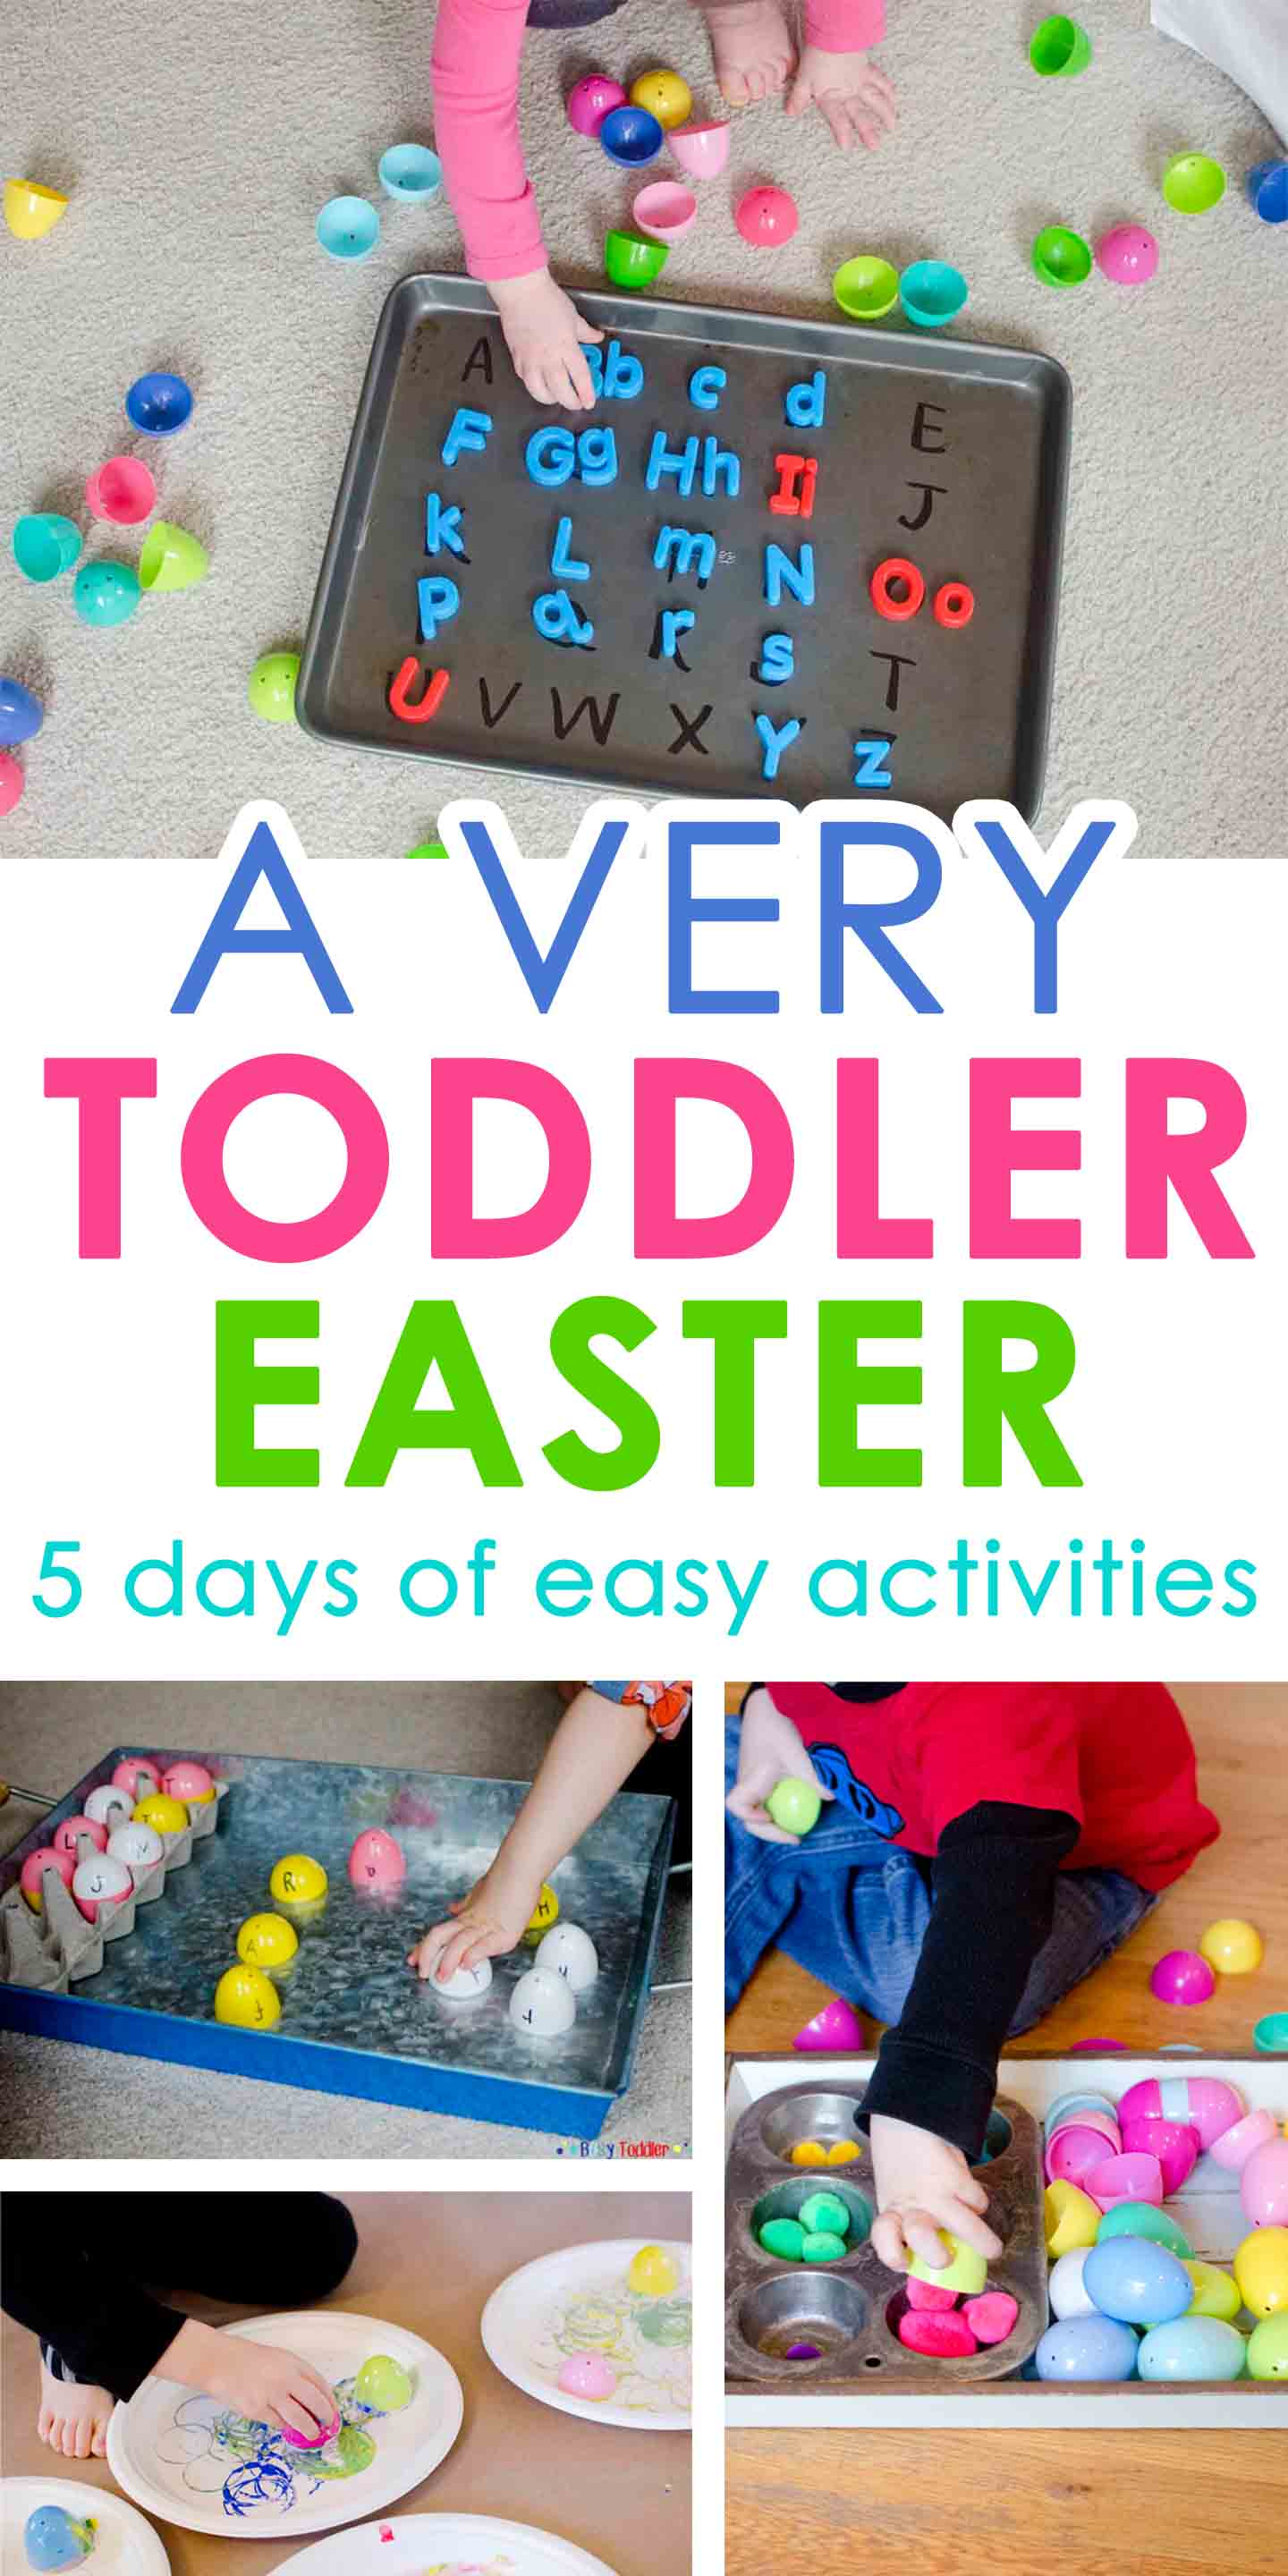 A VERY TODDLER EASTER: Check out these easy and fun toddler easter activities that are perfect for little ones. So many easy Easter ideas!